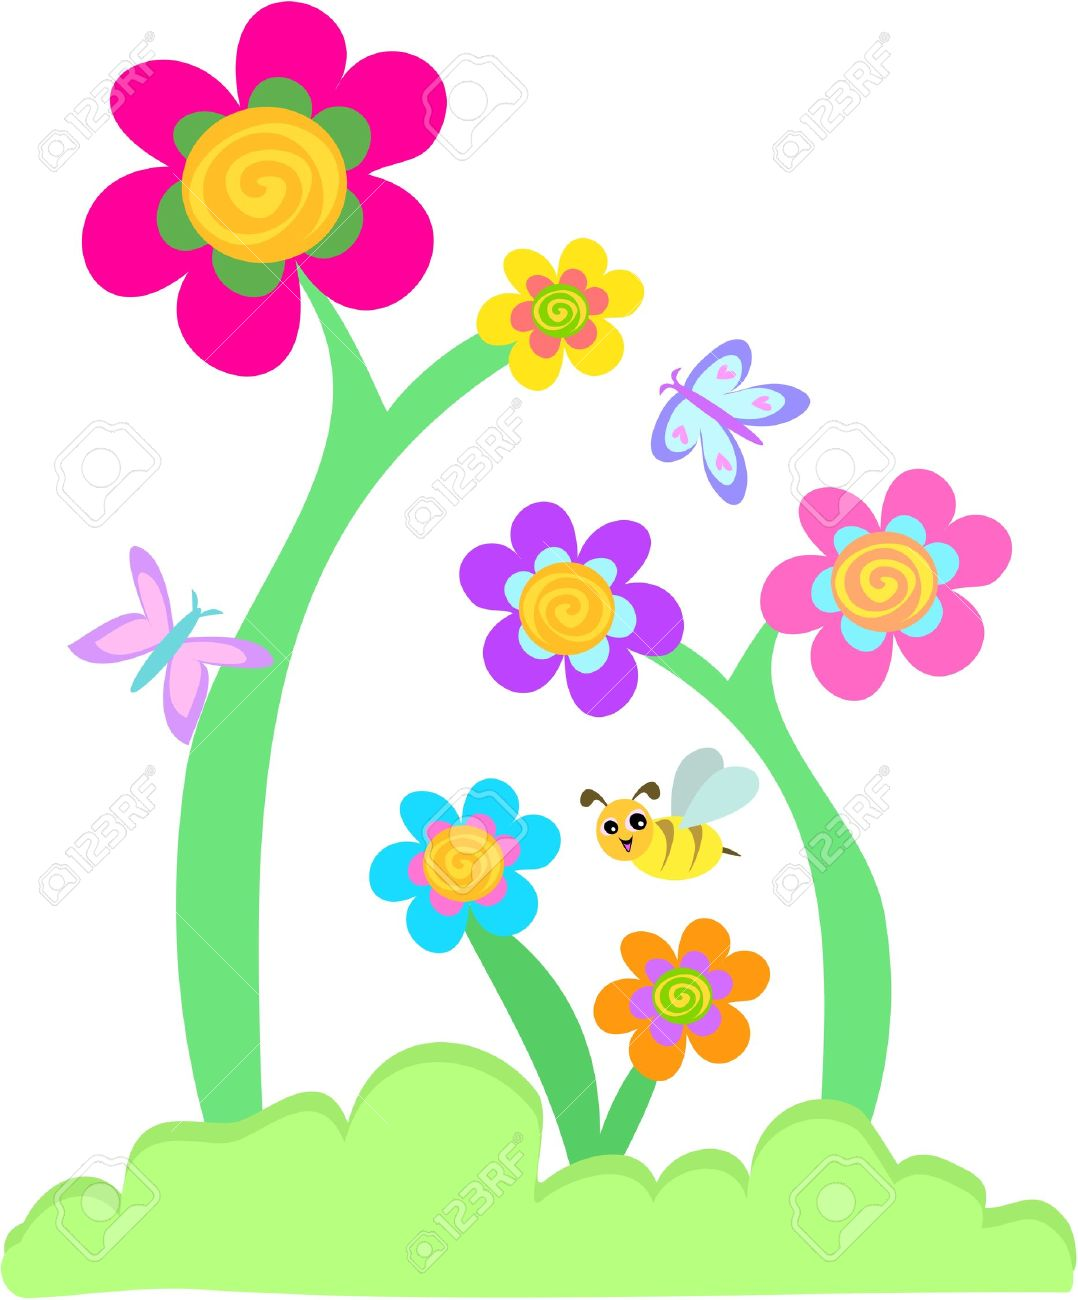 whimsical flower garden with butterflies and bee royalty free